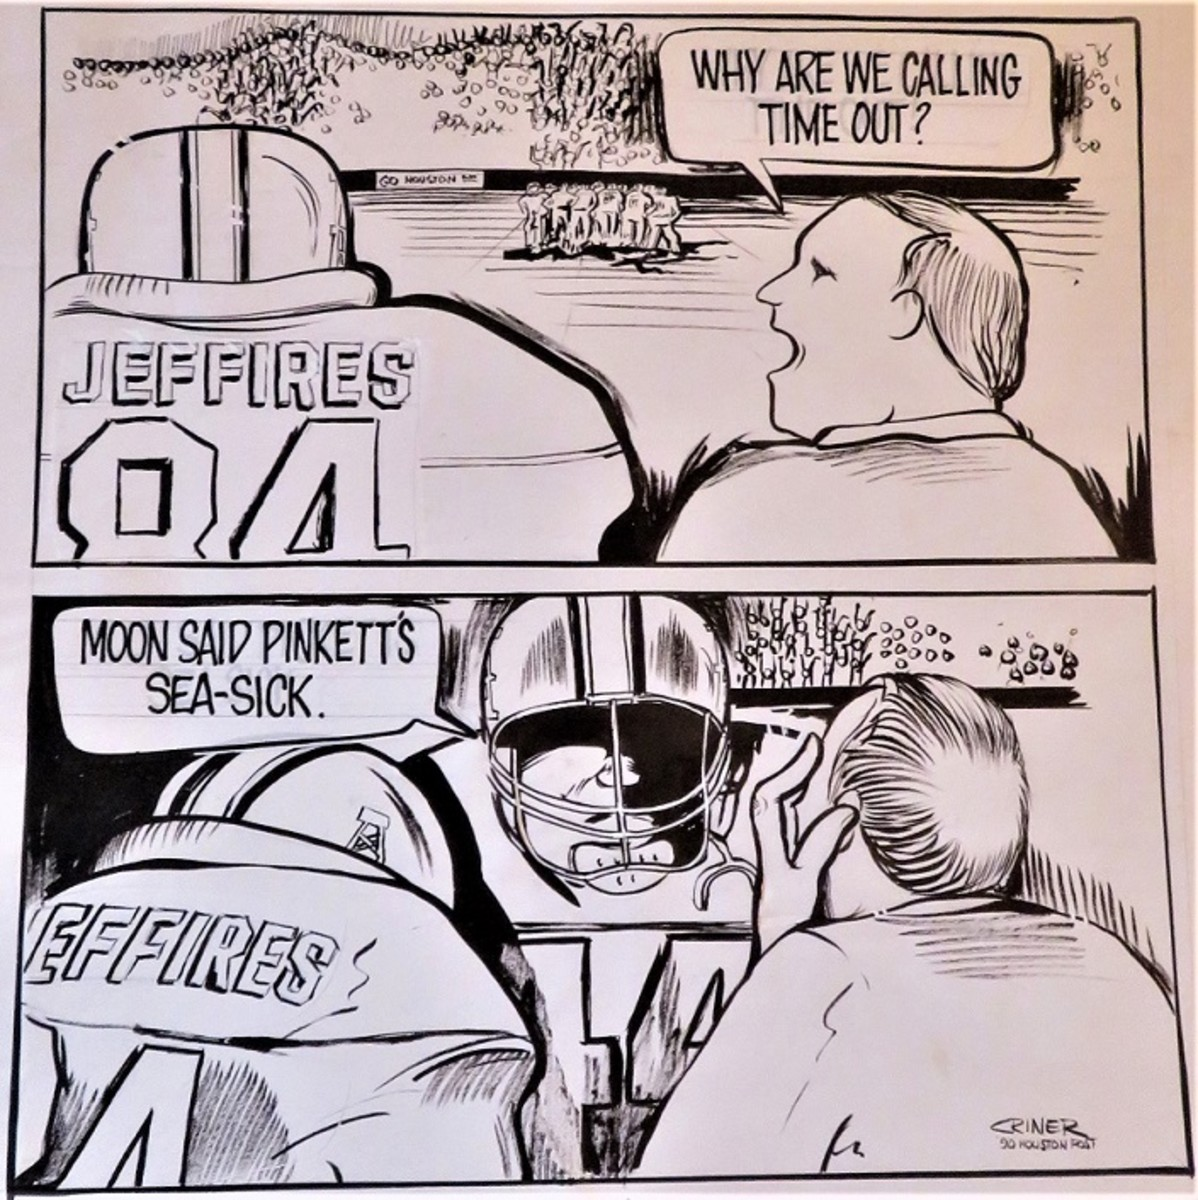 Houston Oilers Cartoon by Charles Criner